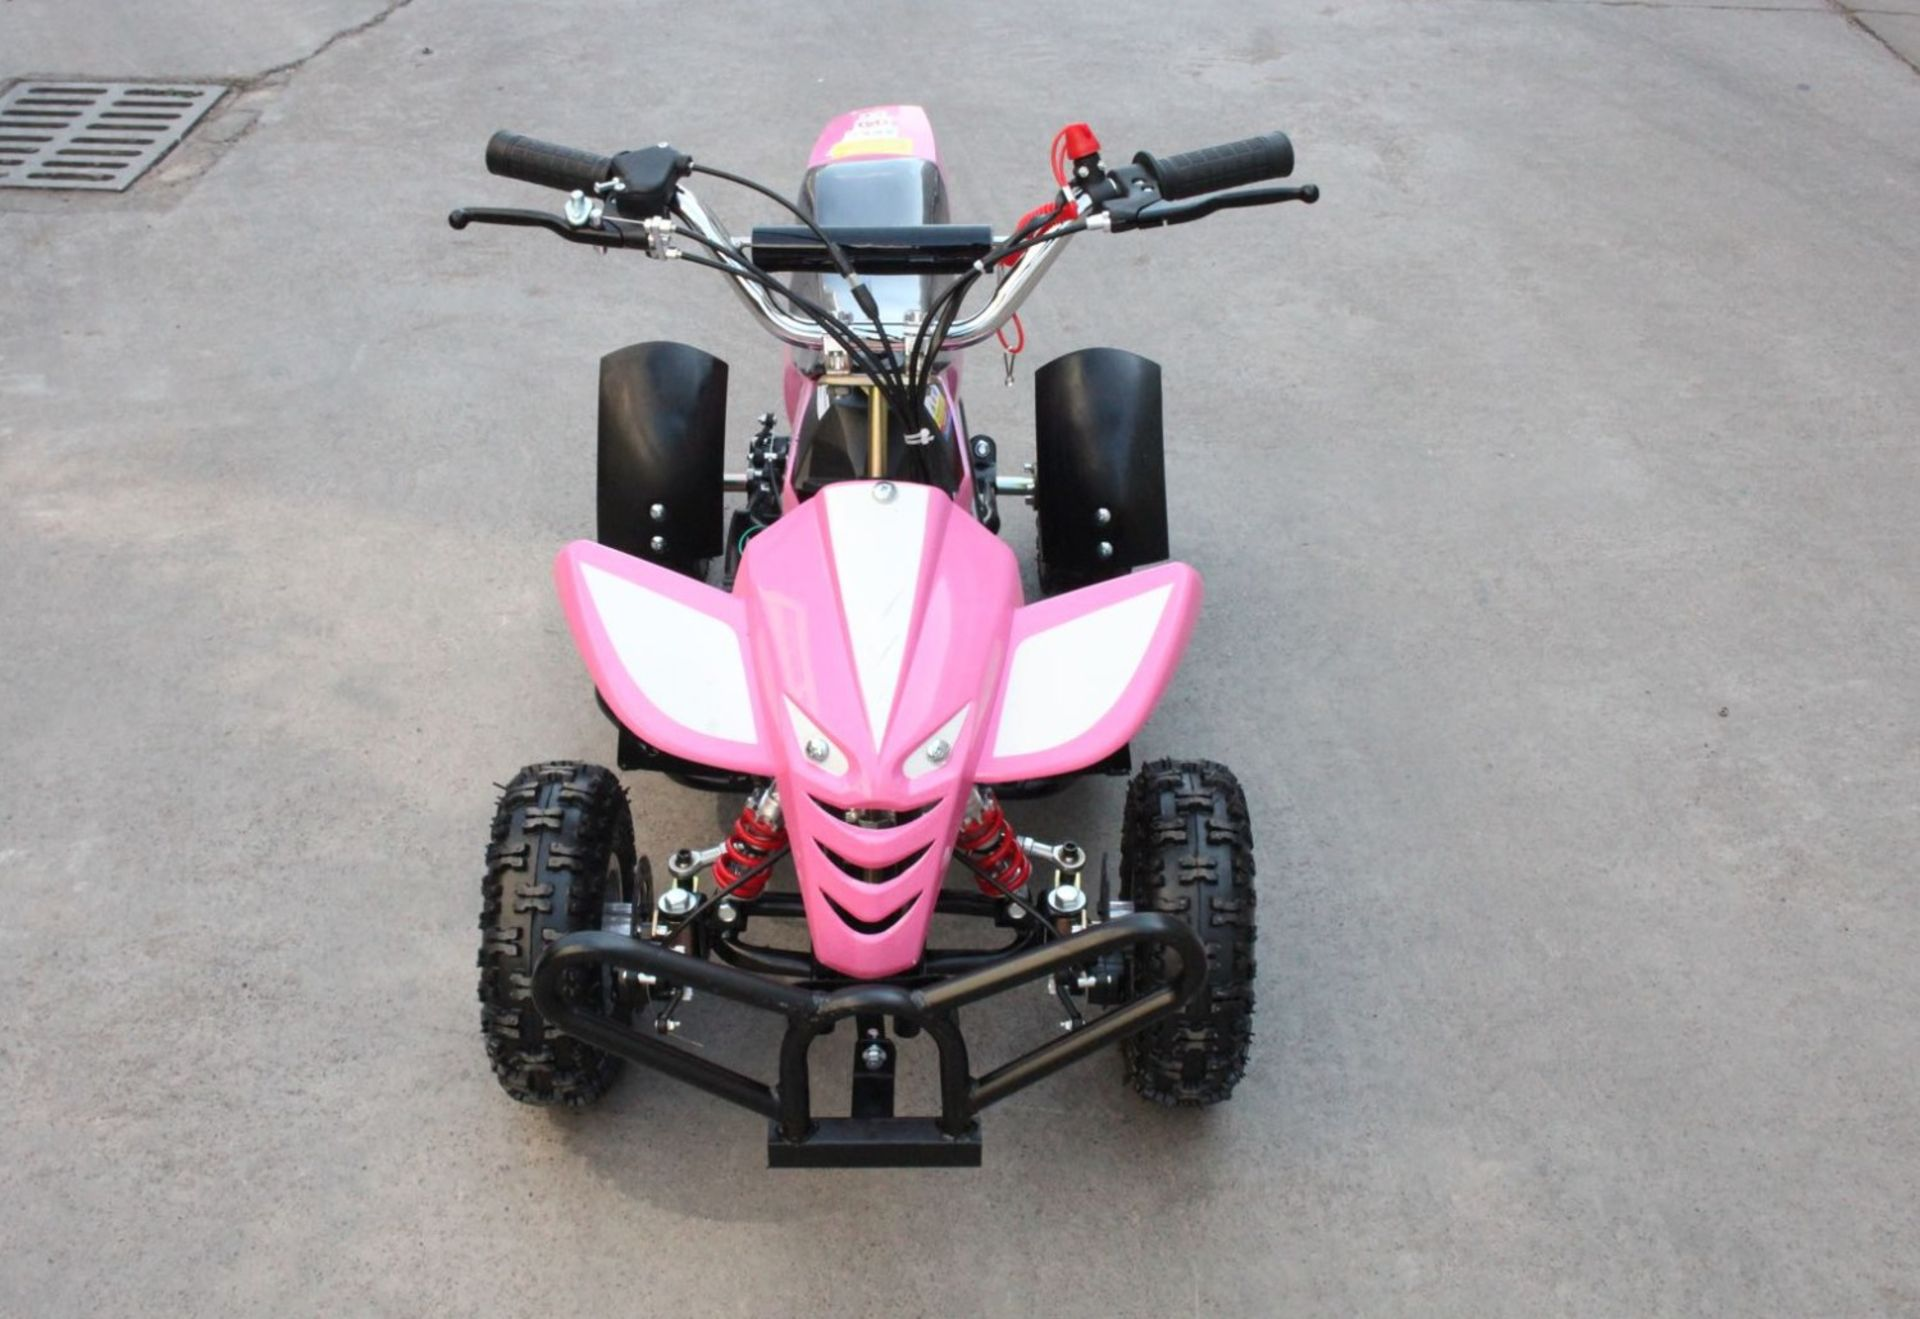 + VAT Brand New 50cc Mini Quad Bike FRM - Colours May Vary - Picture May Vary From Actual Item - Image 4 of 9